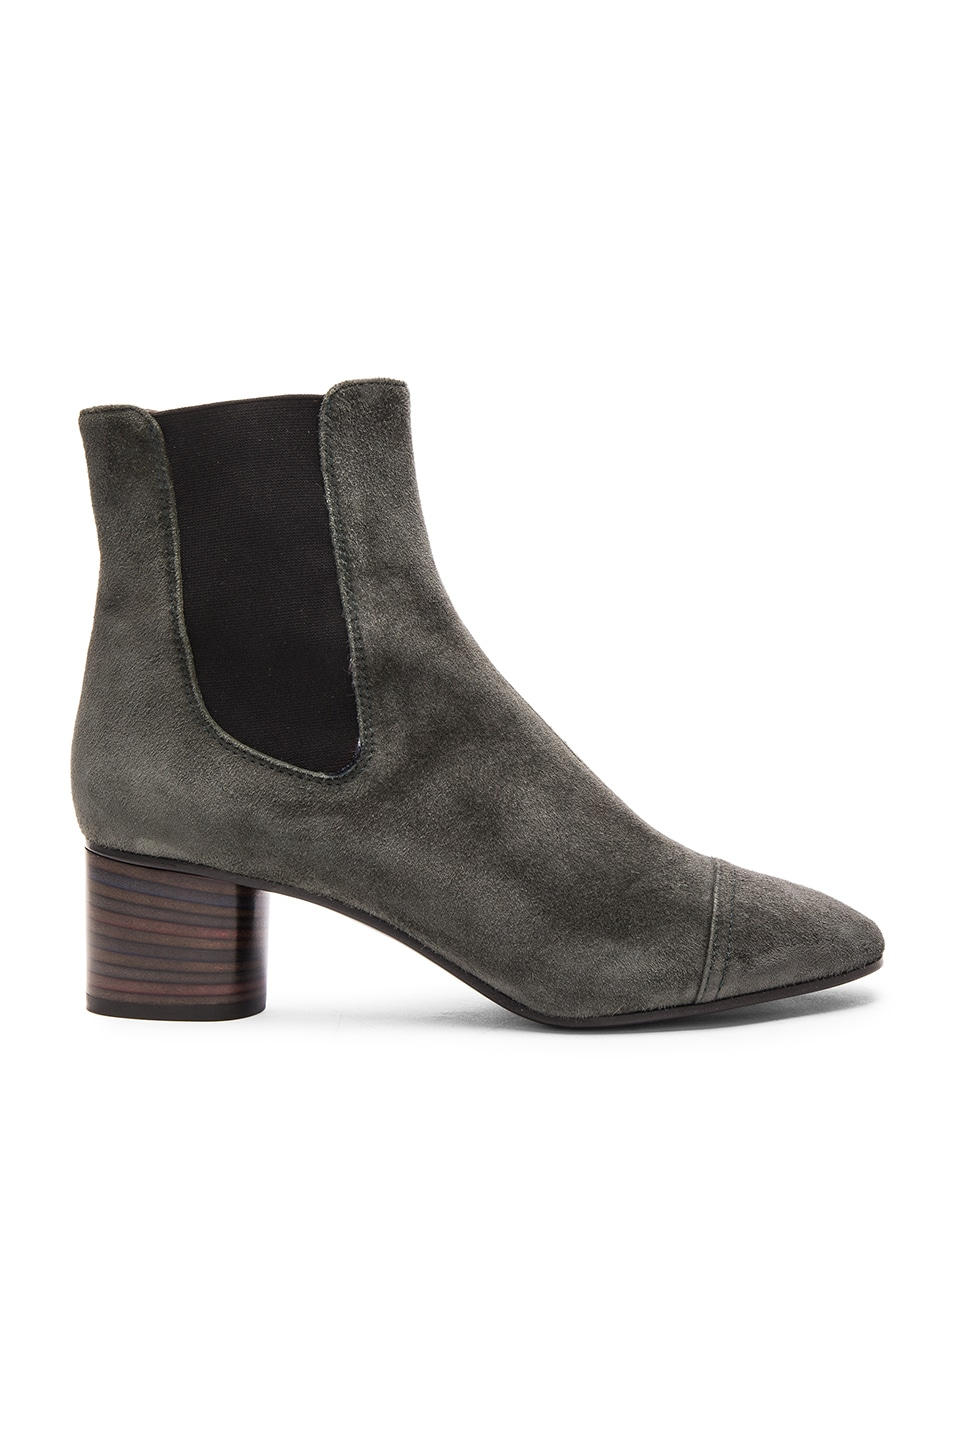 Image 1 of Isabel Marant Danae Velvet Booties in Anthracite